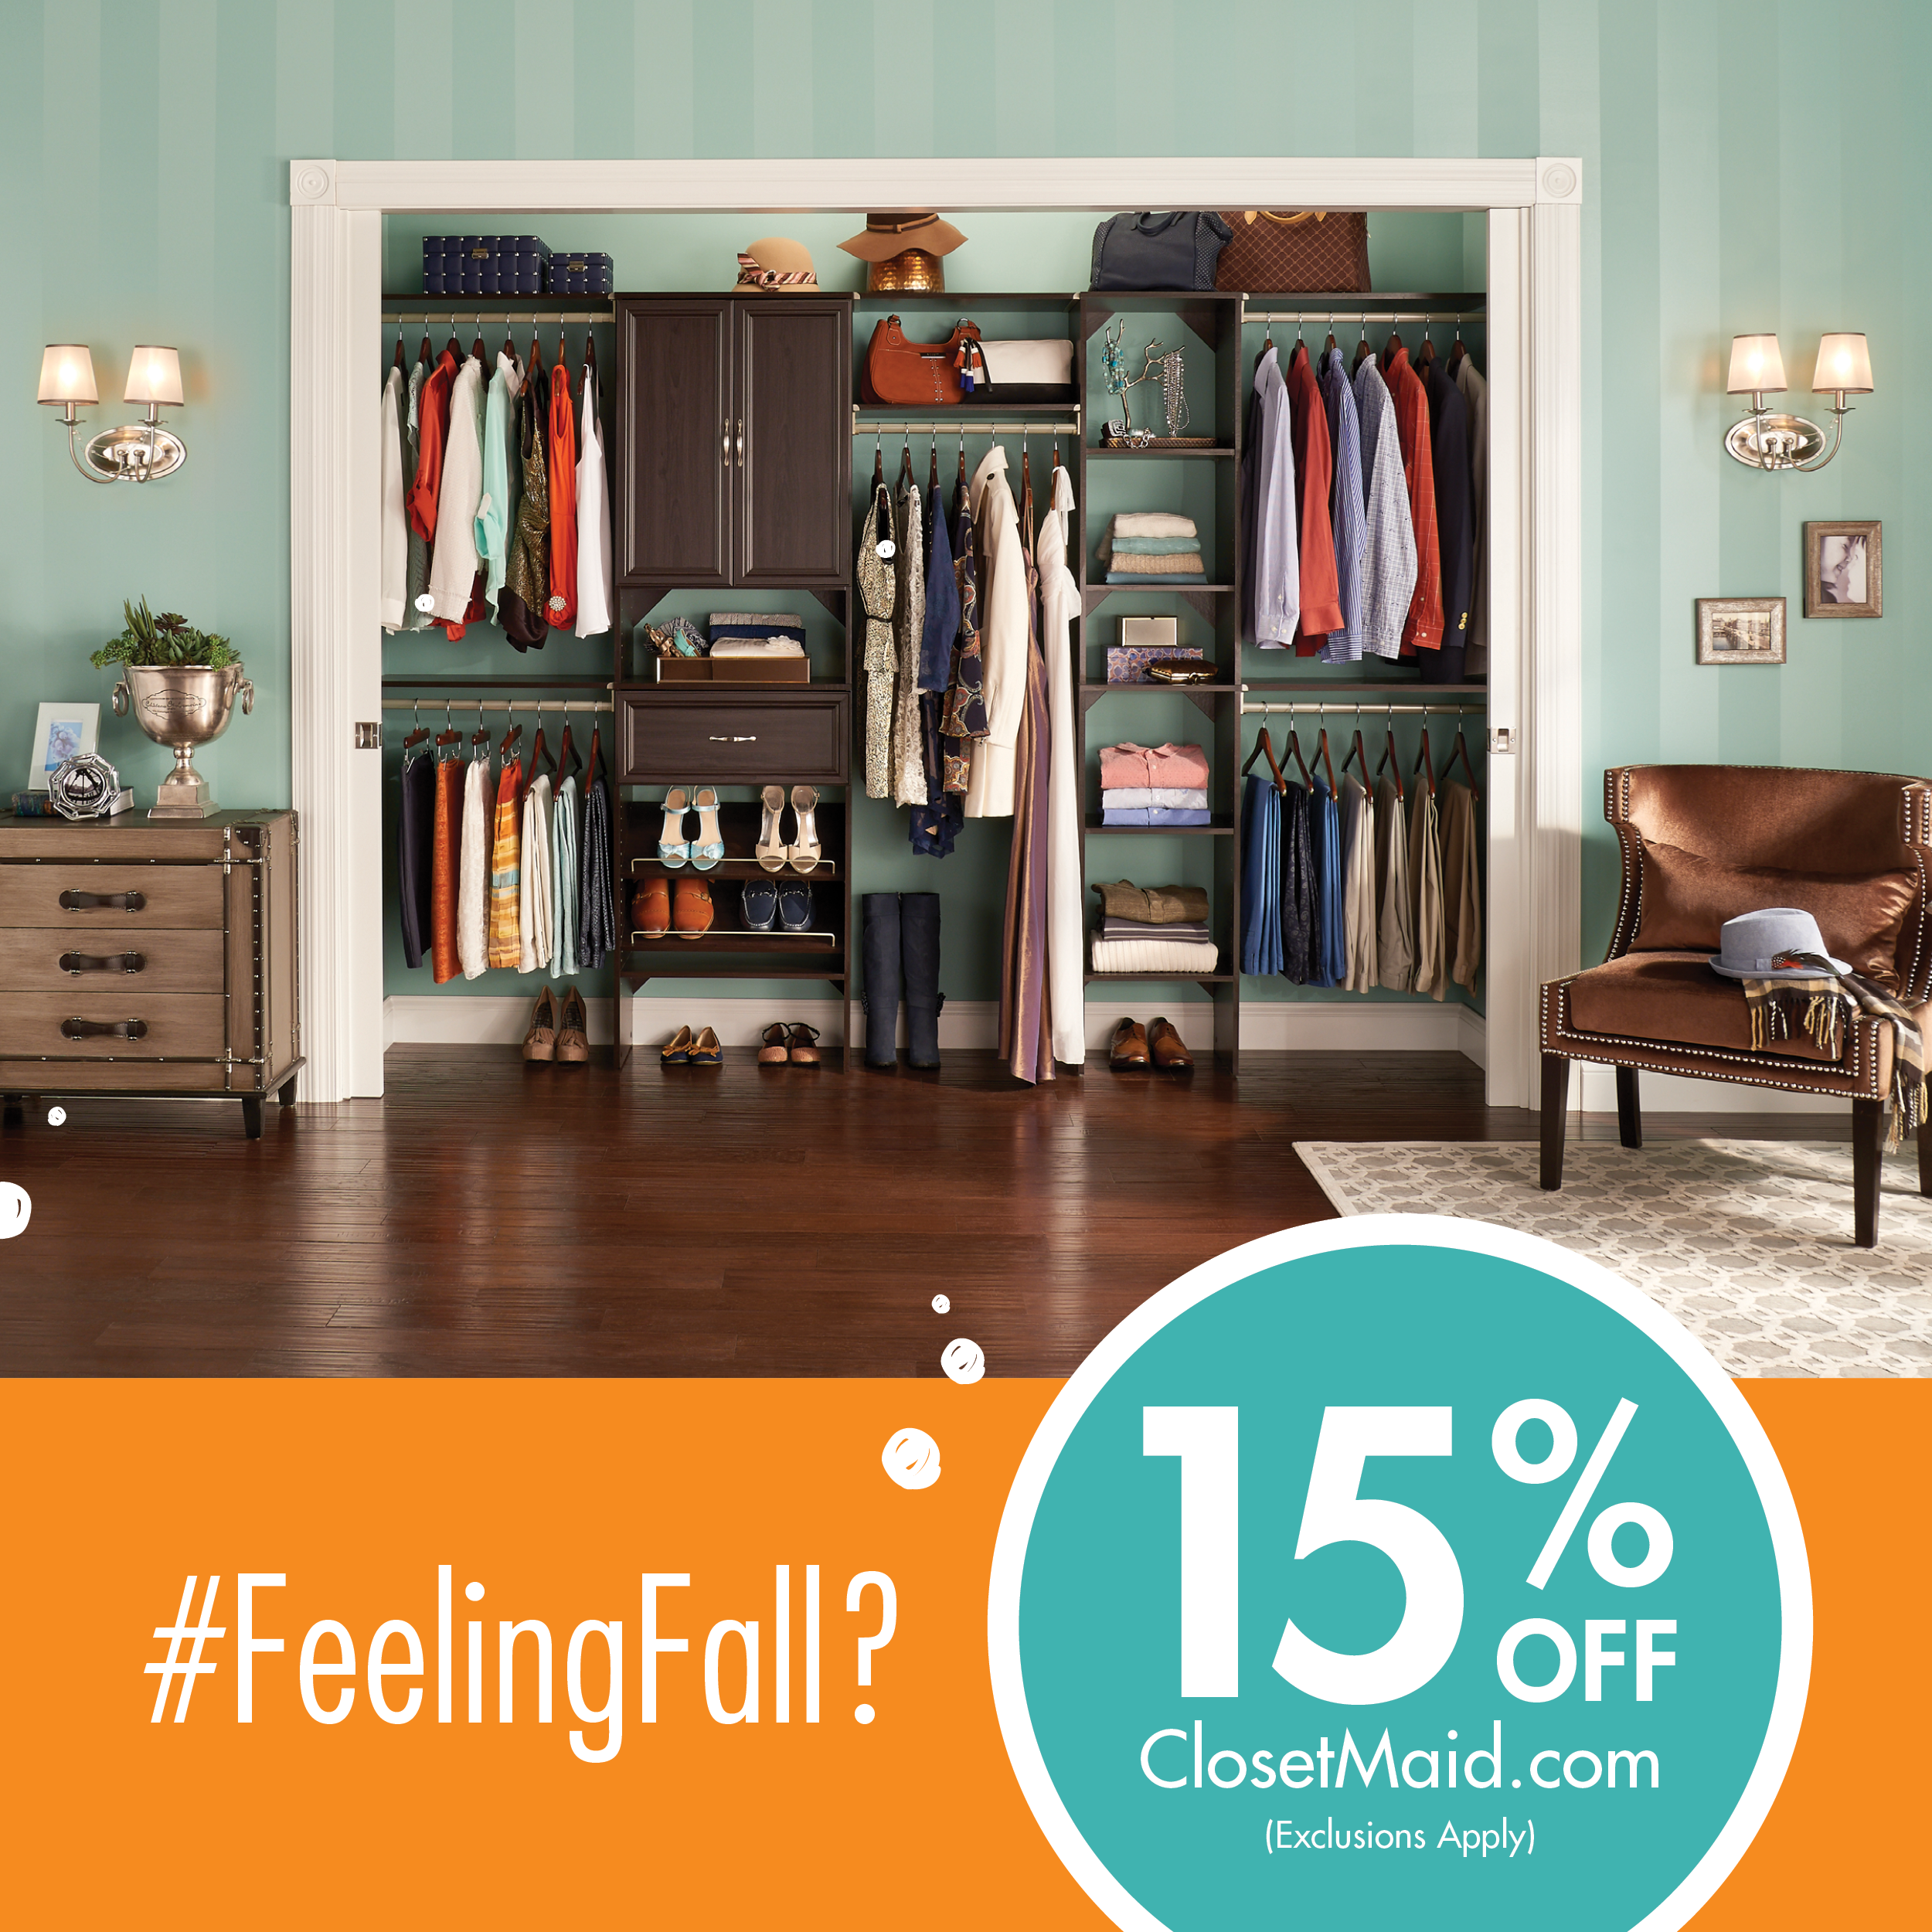 Get Your Home Fall Ready Today With 15% Off Your ClosetMaid.com Order!